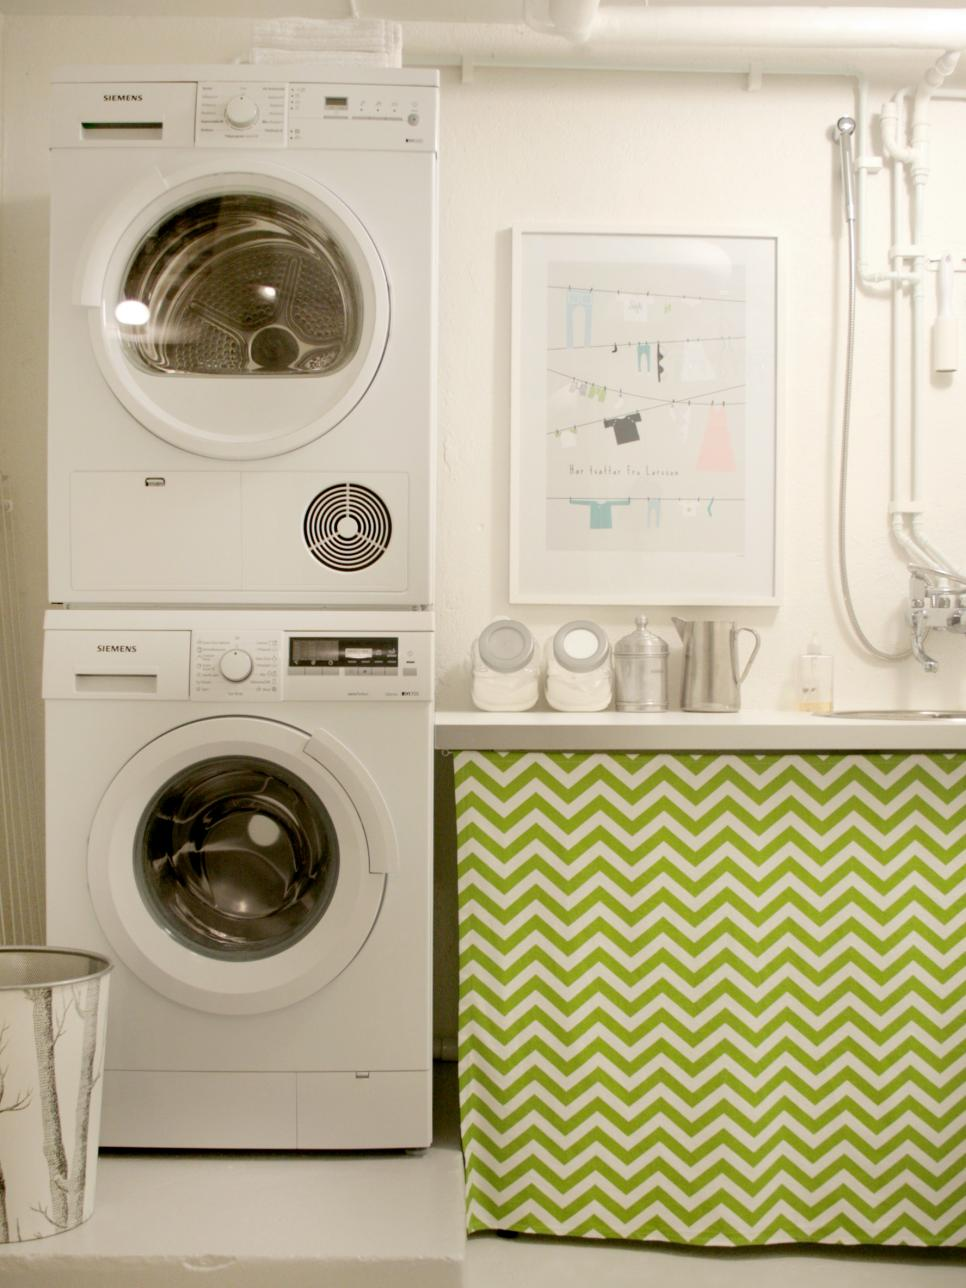 Chic Laundry Room Decorating Ideas HGTV - Utility room ideas